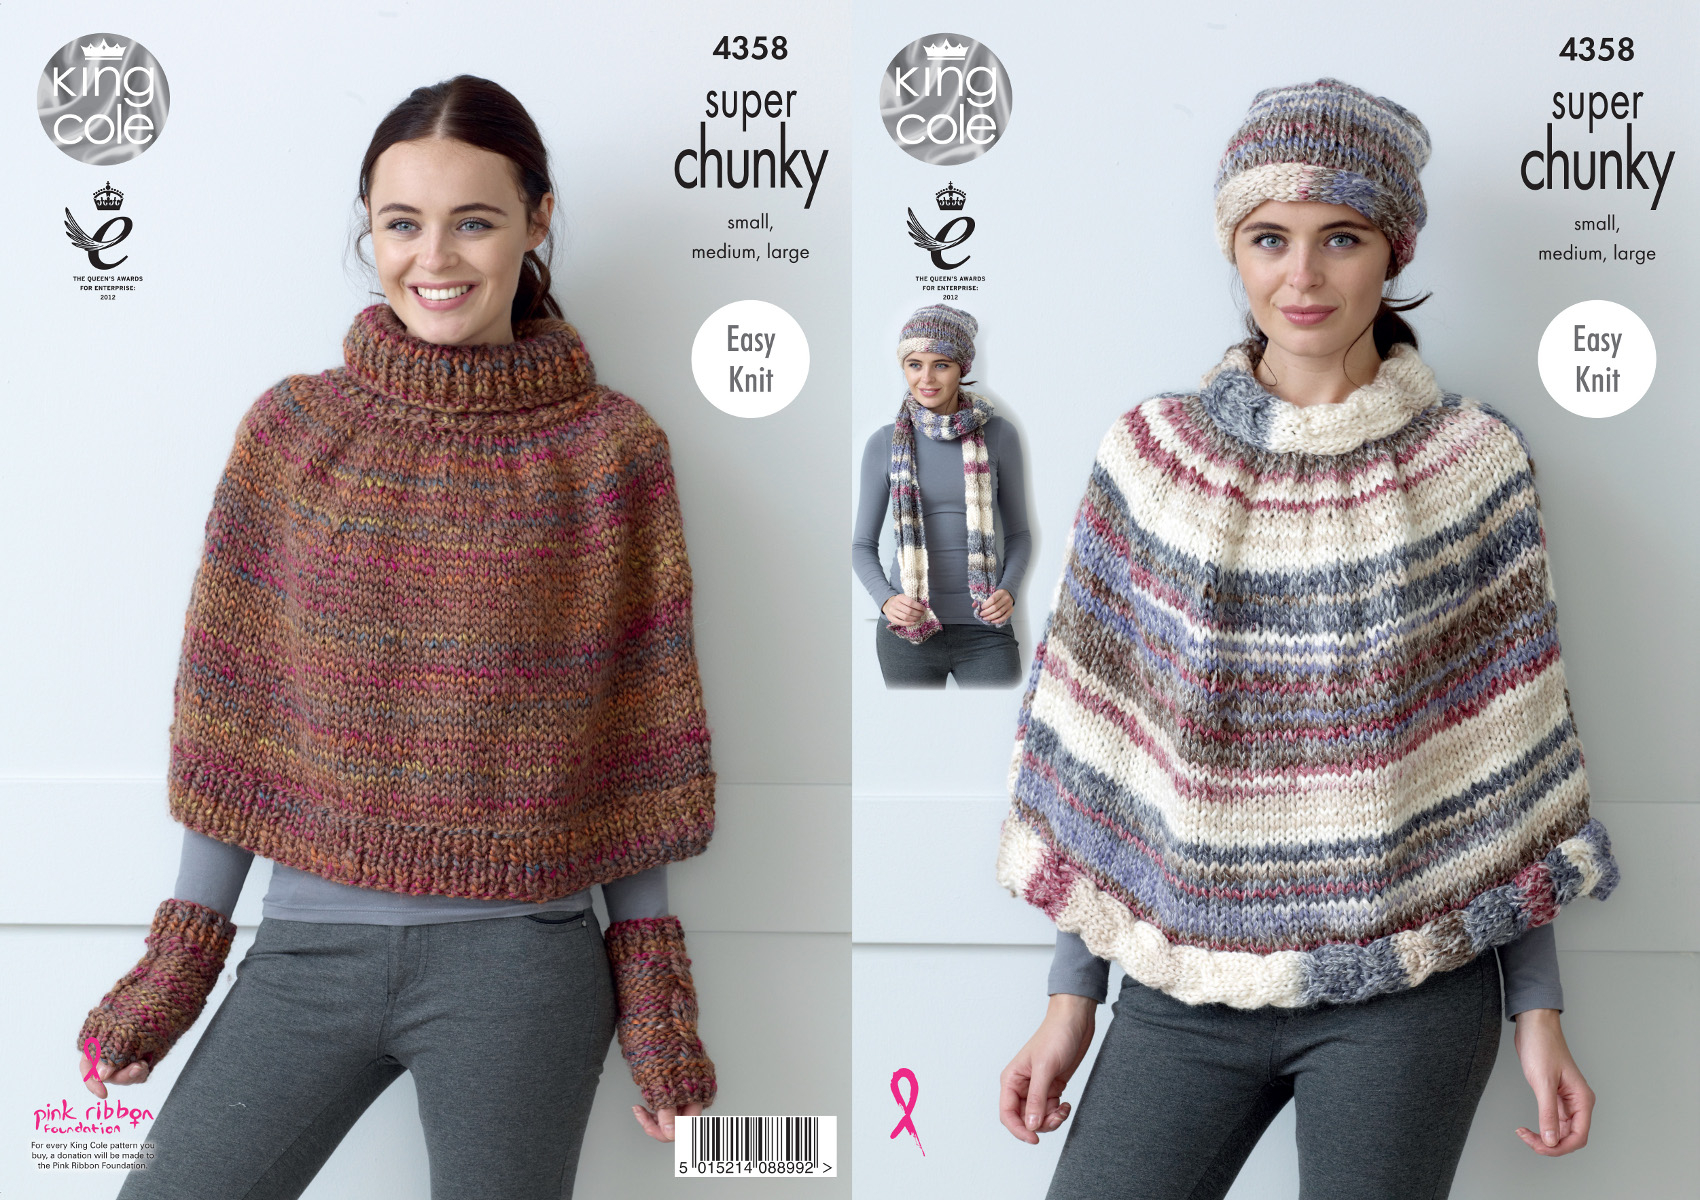 Poncho Knitting Pattern Chunky Details About King Cole Ladies Super Chunky Knitting Pattern Cape Hat Scarf Wrist Warmers 4358